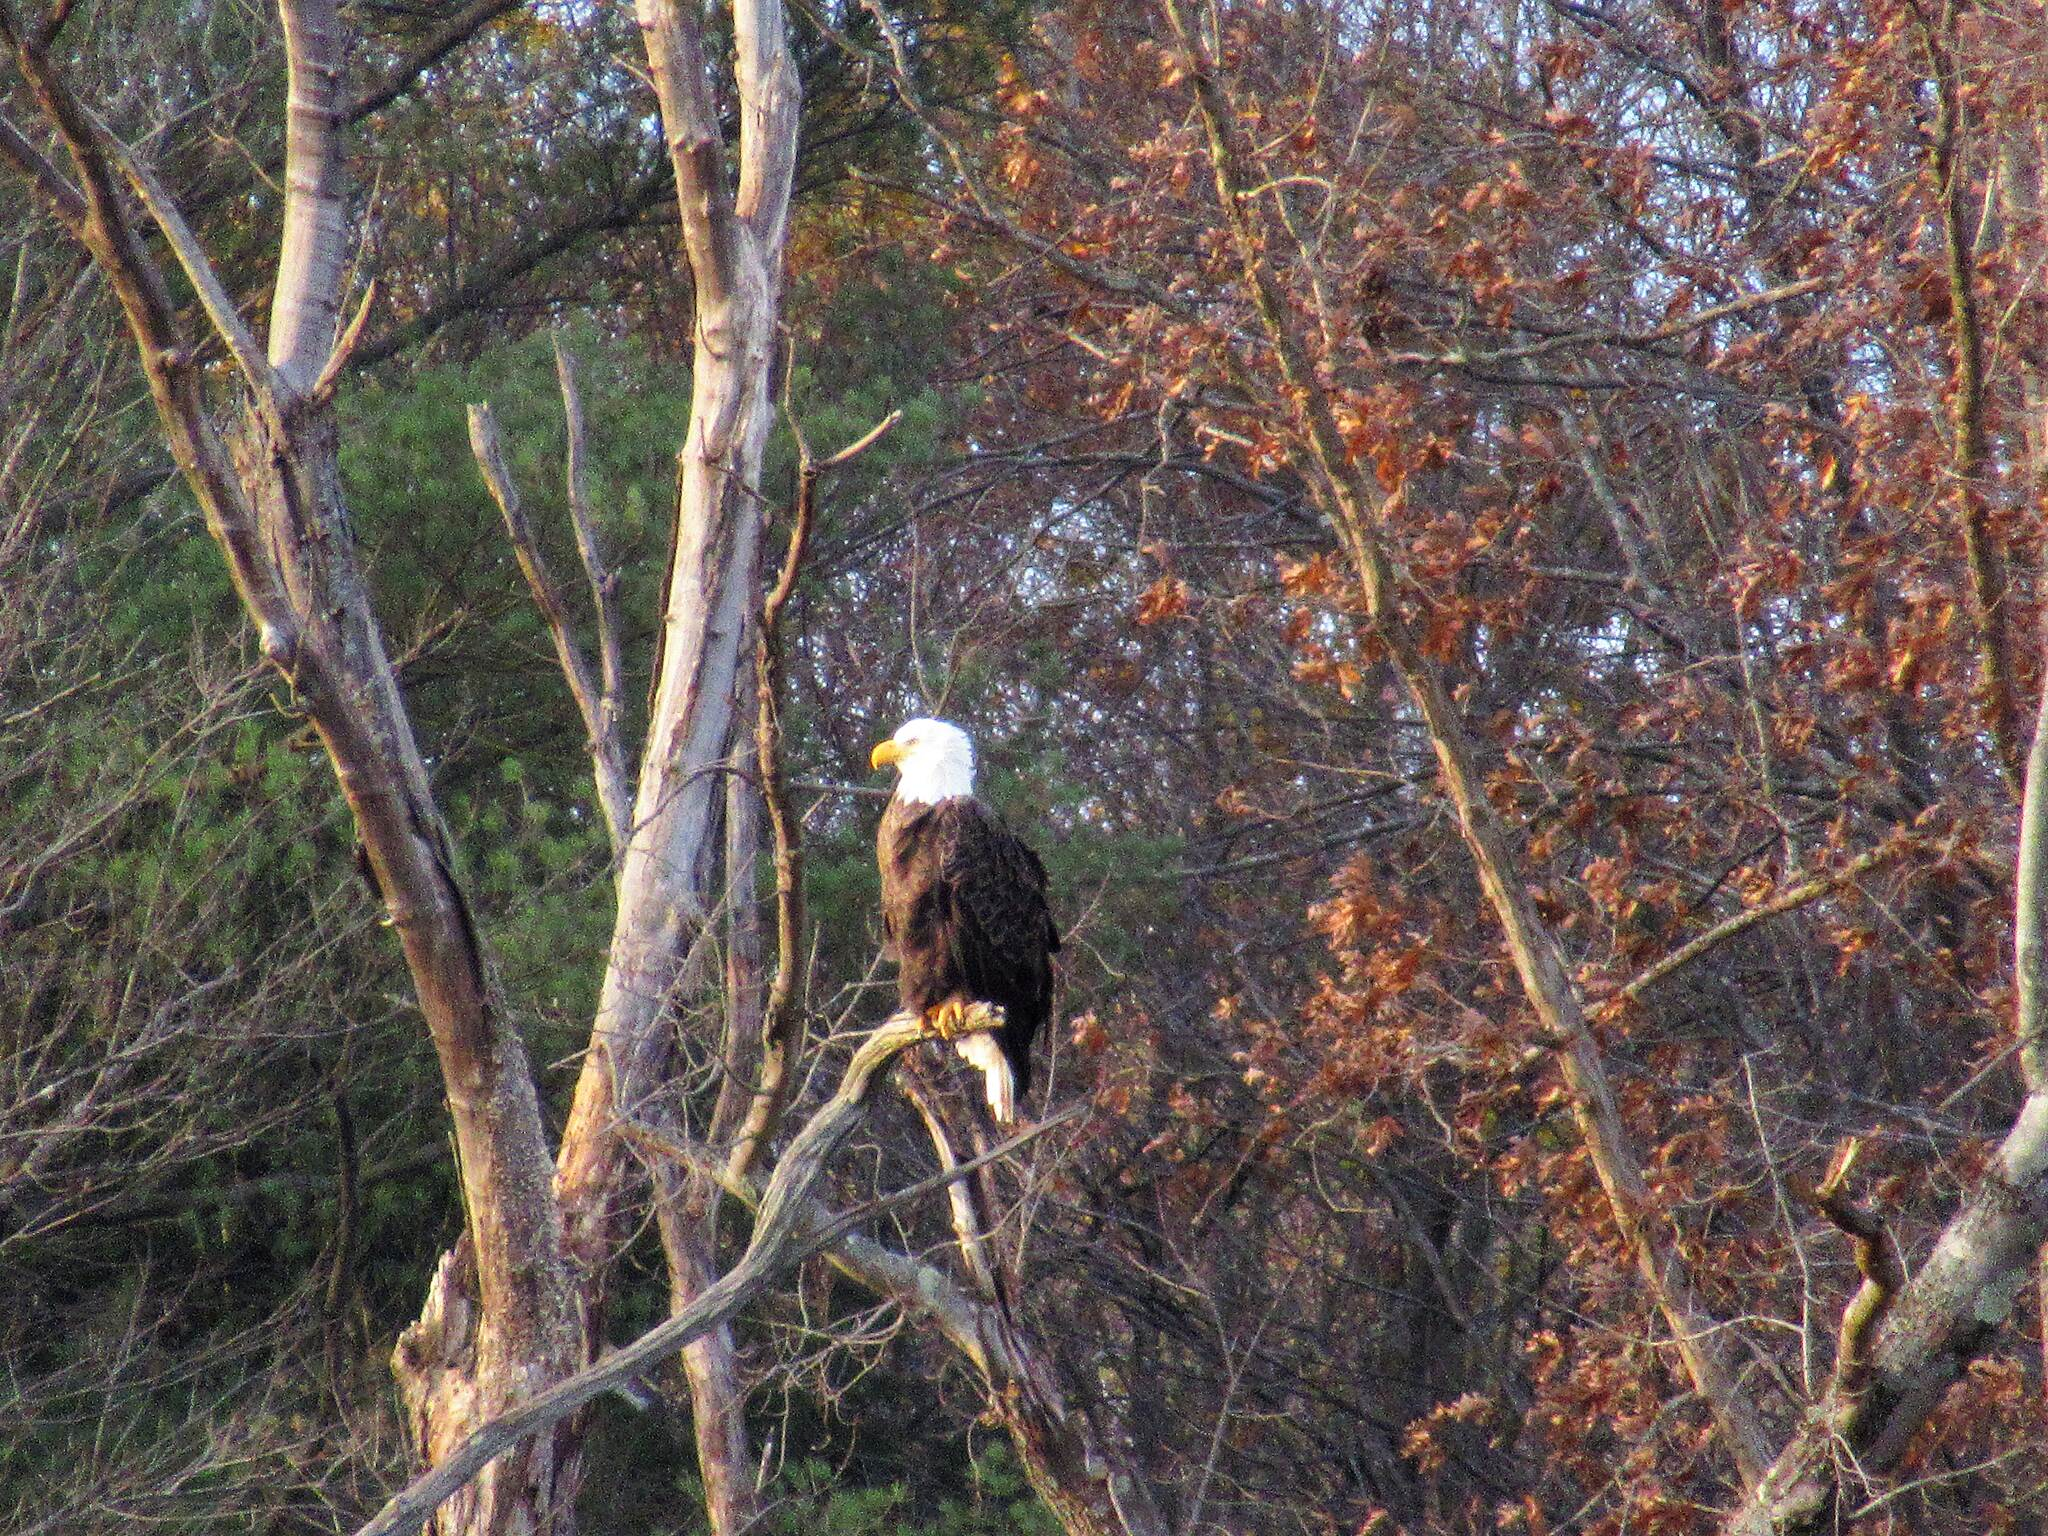 John C. Oliver Multi-Purpose Loop Trail Bald Eagle-November 2018 This bald eagle was spotted along the causeway just above the swampy area.